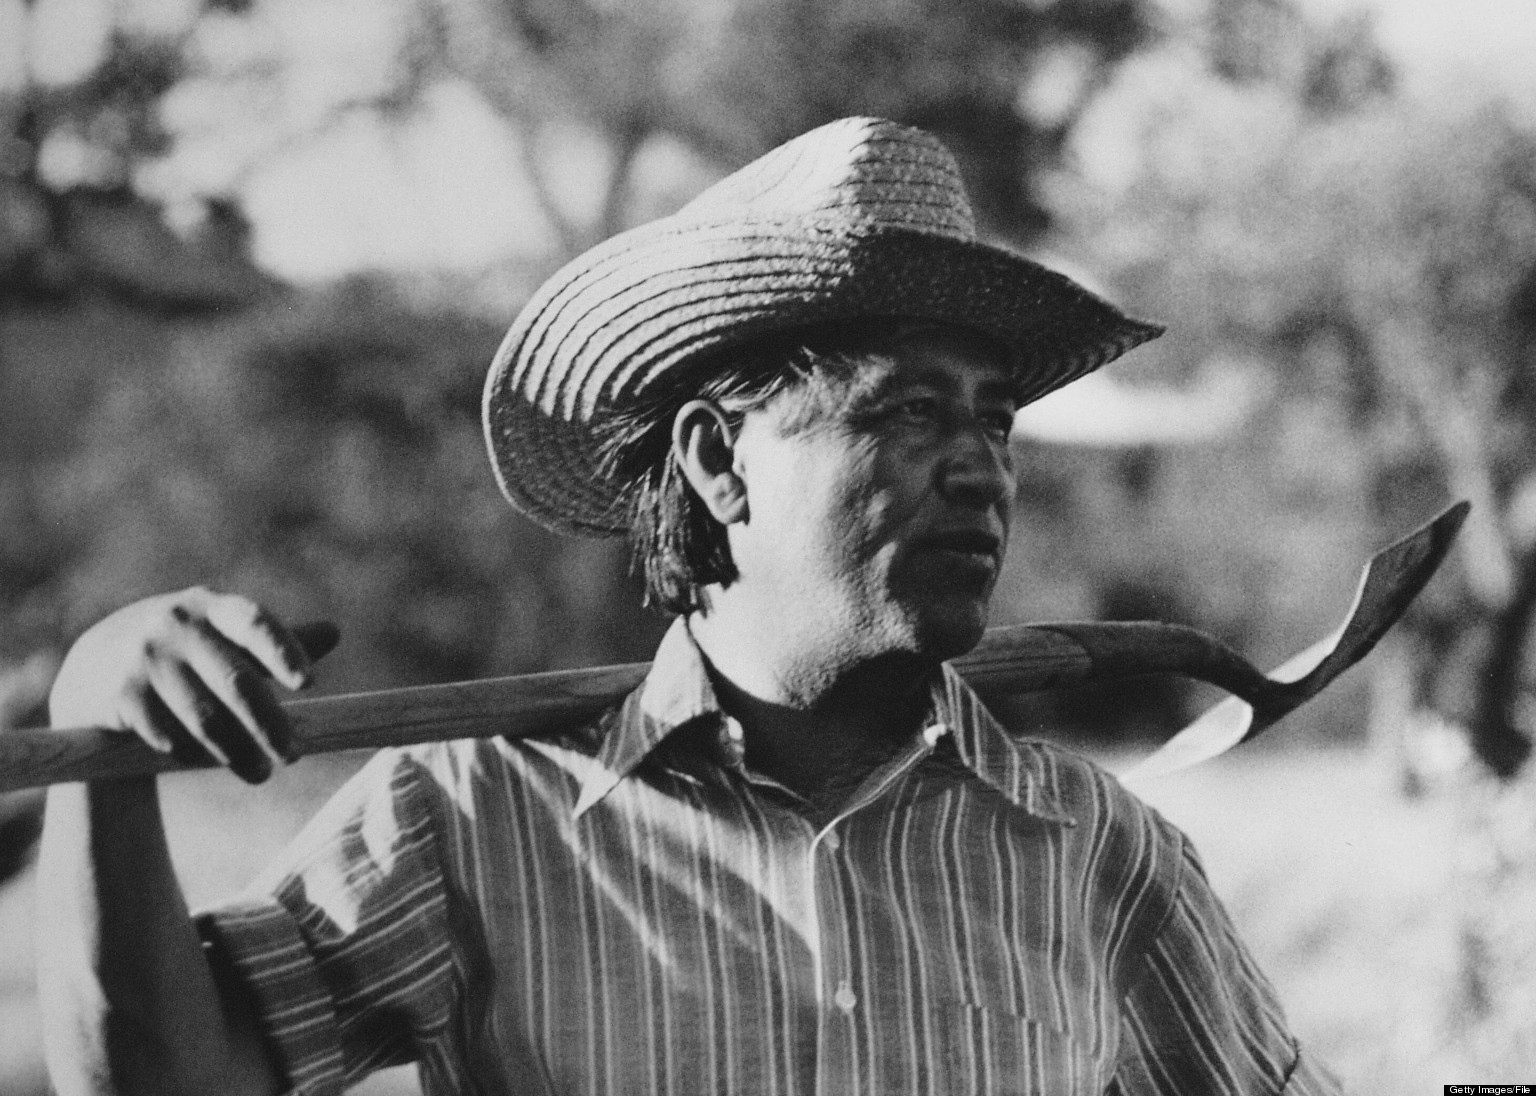 Cesar Chavez: Cesar Chavez Used Terms 'Wetbacks,' 'Illegals' To Describe